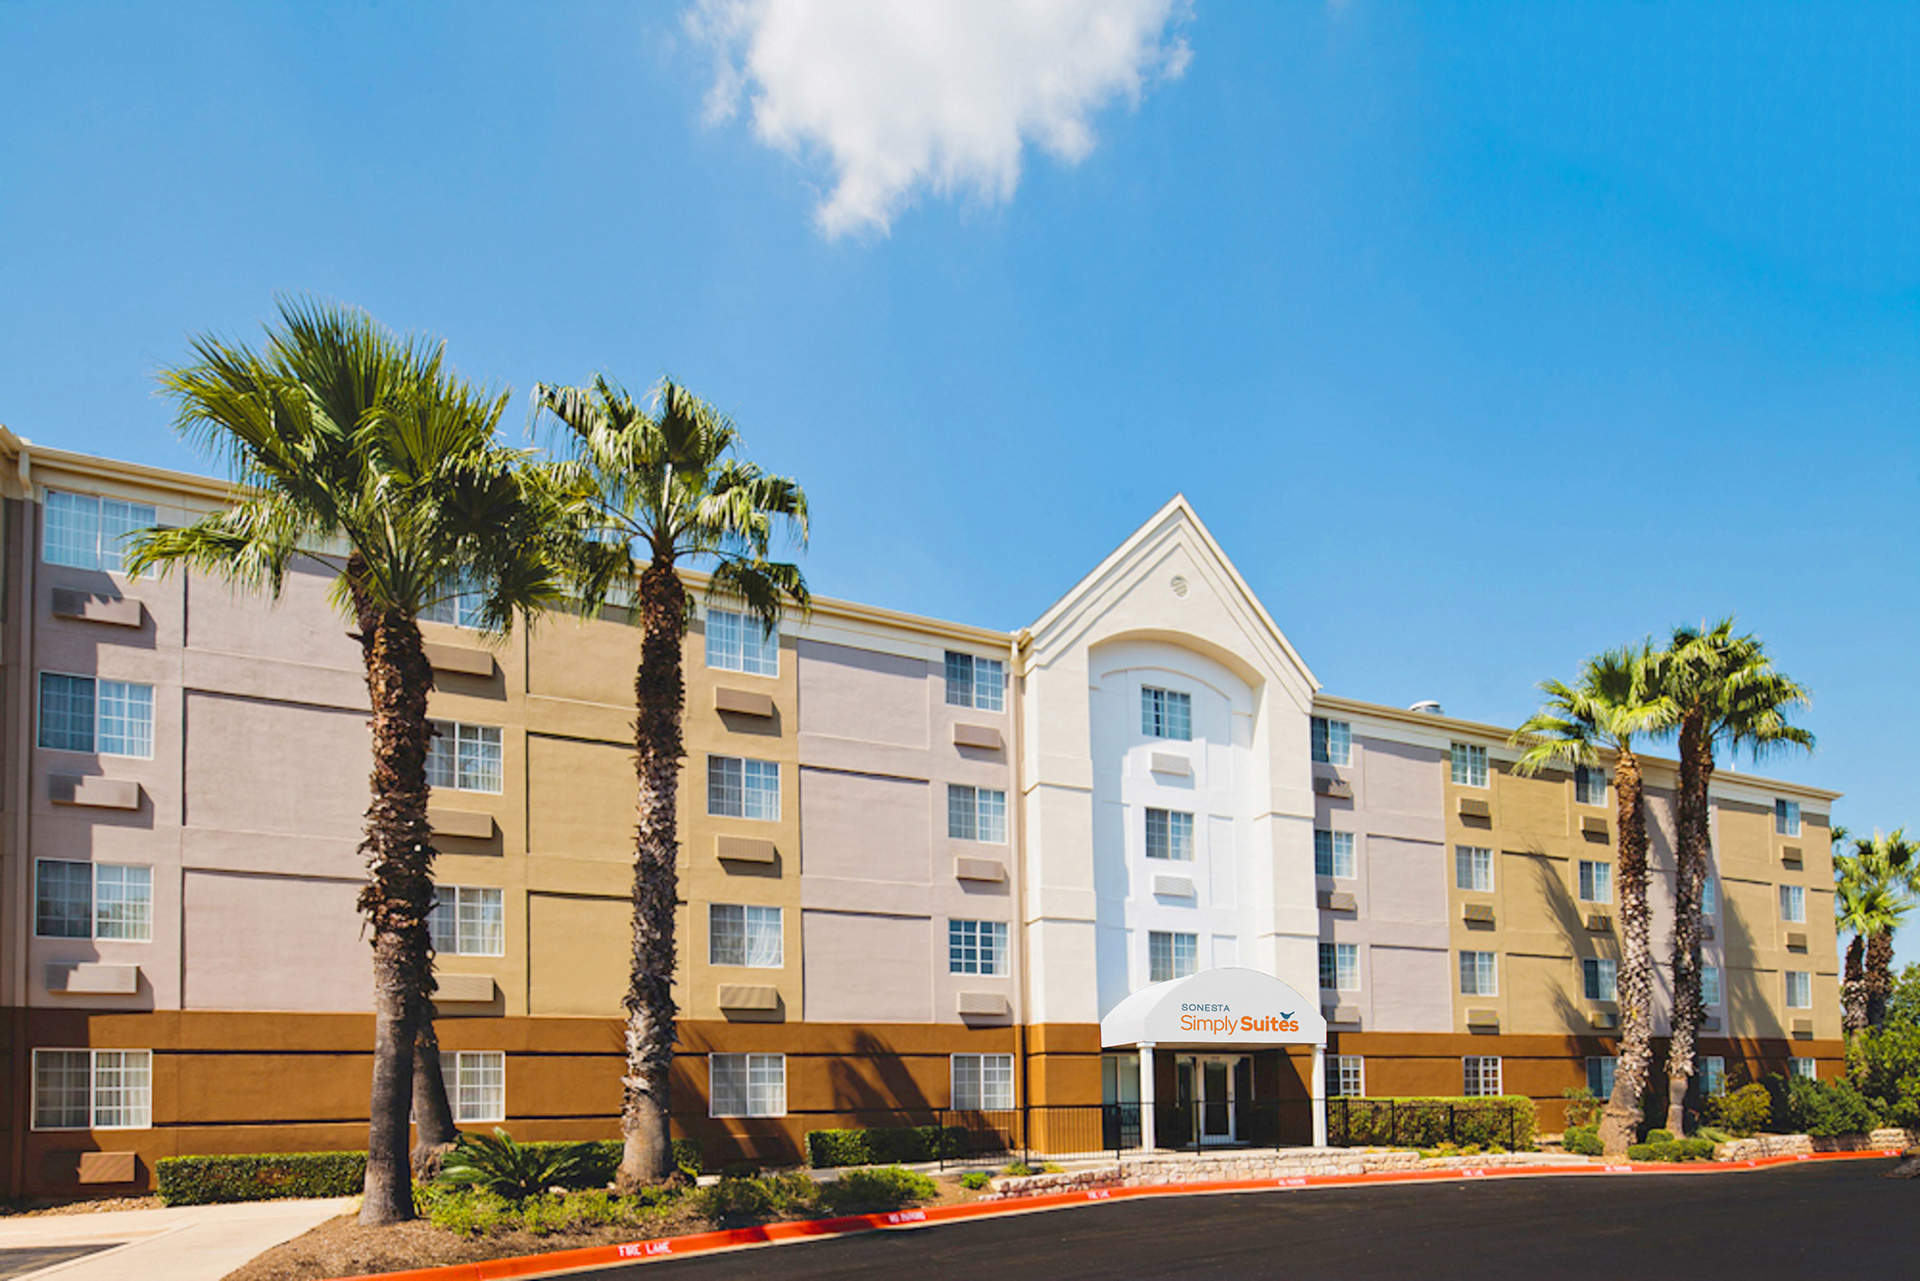 Sonesta Simply Suites San Antonio Northwest - Medical Center